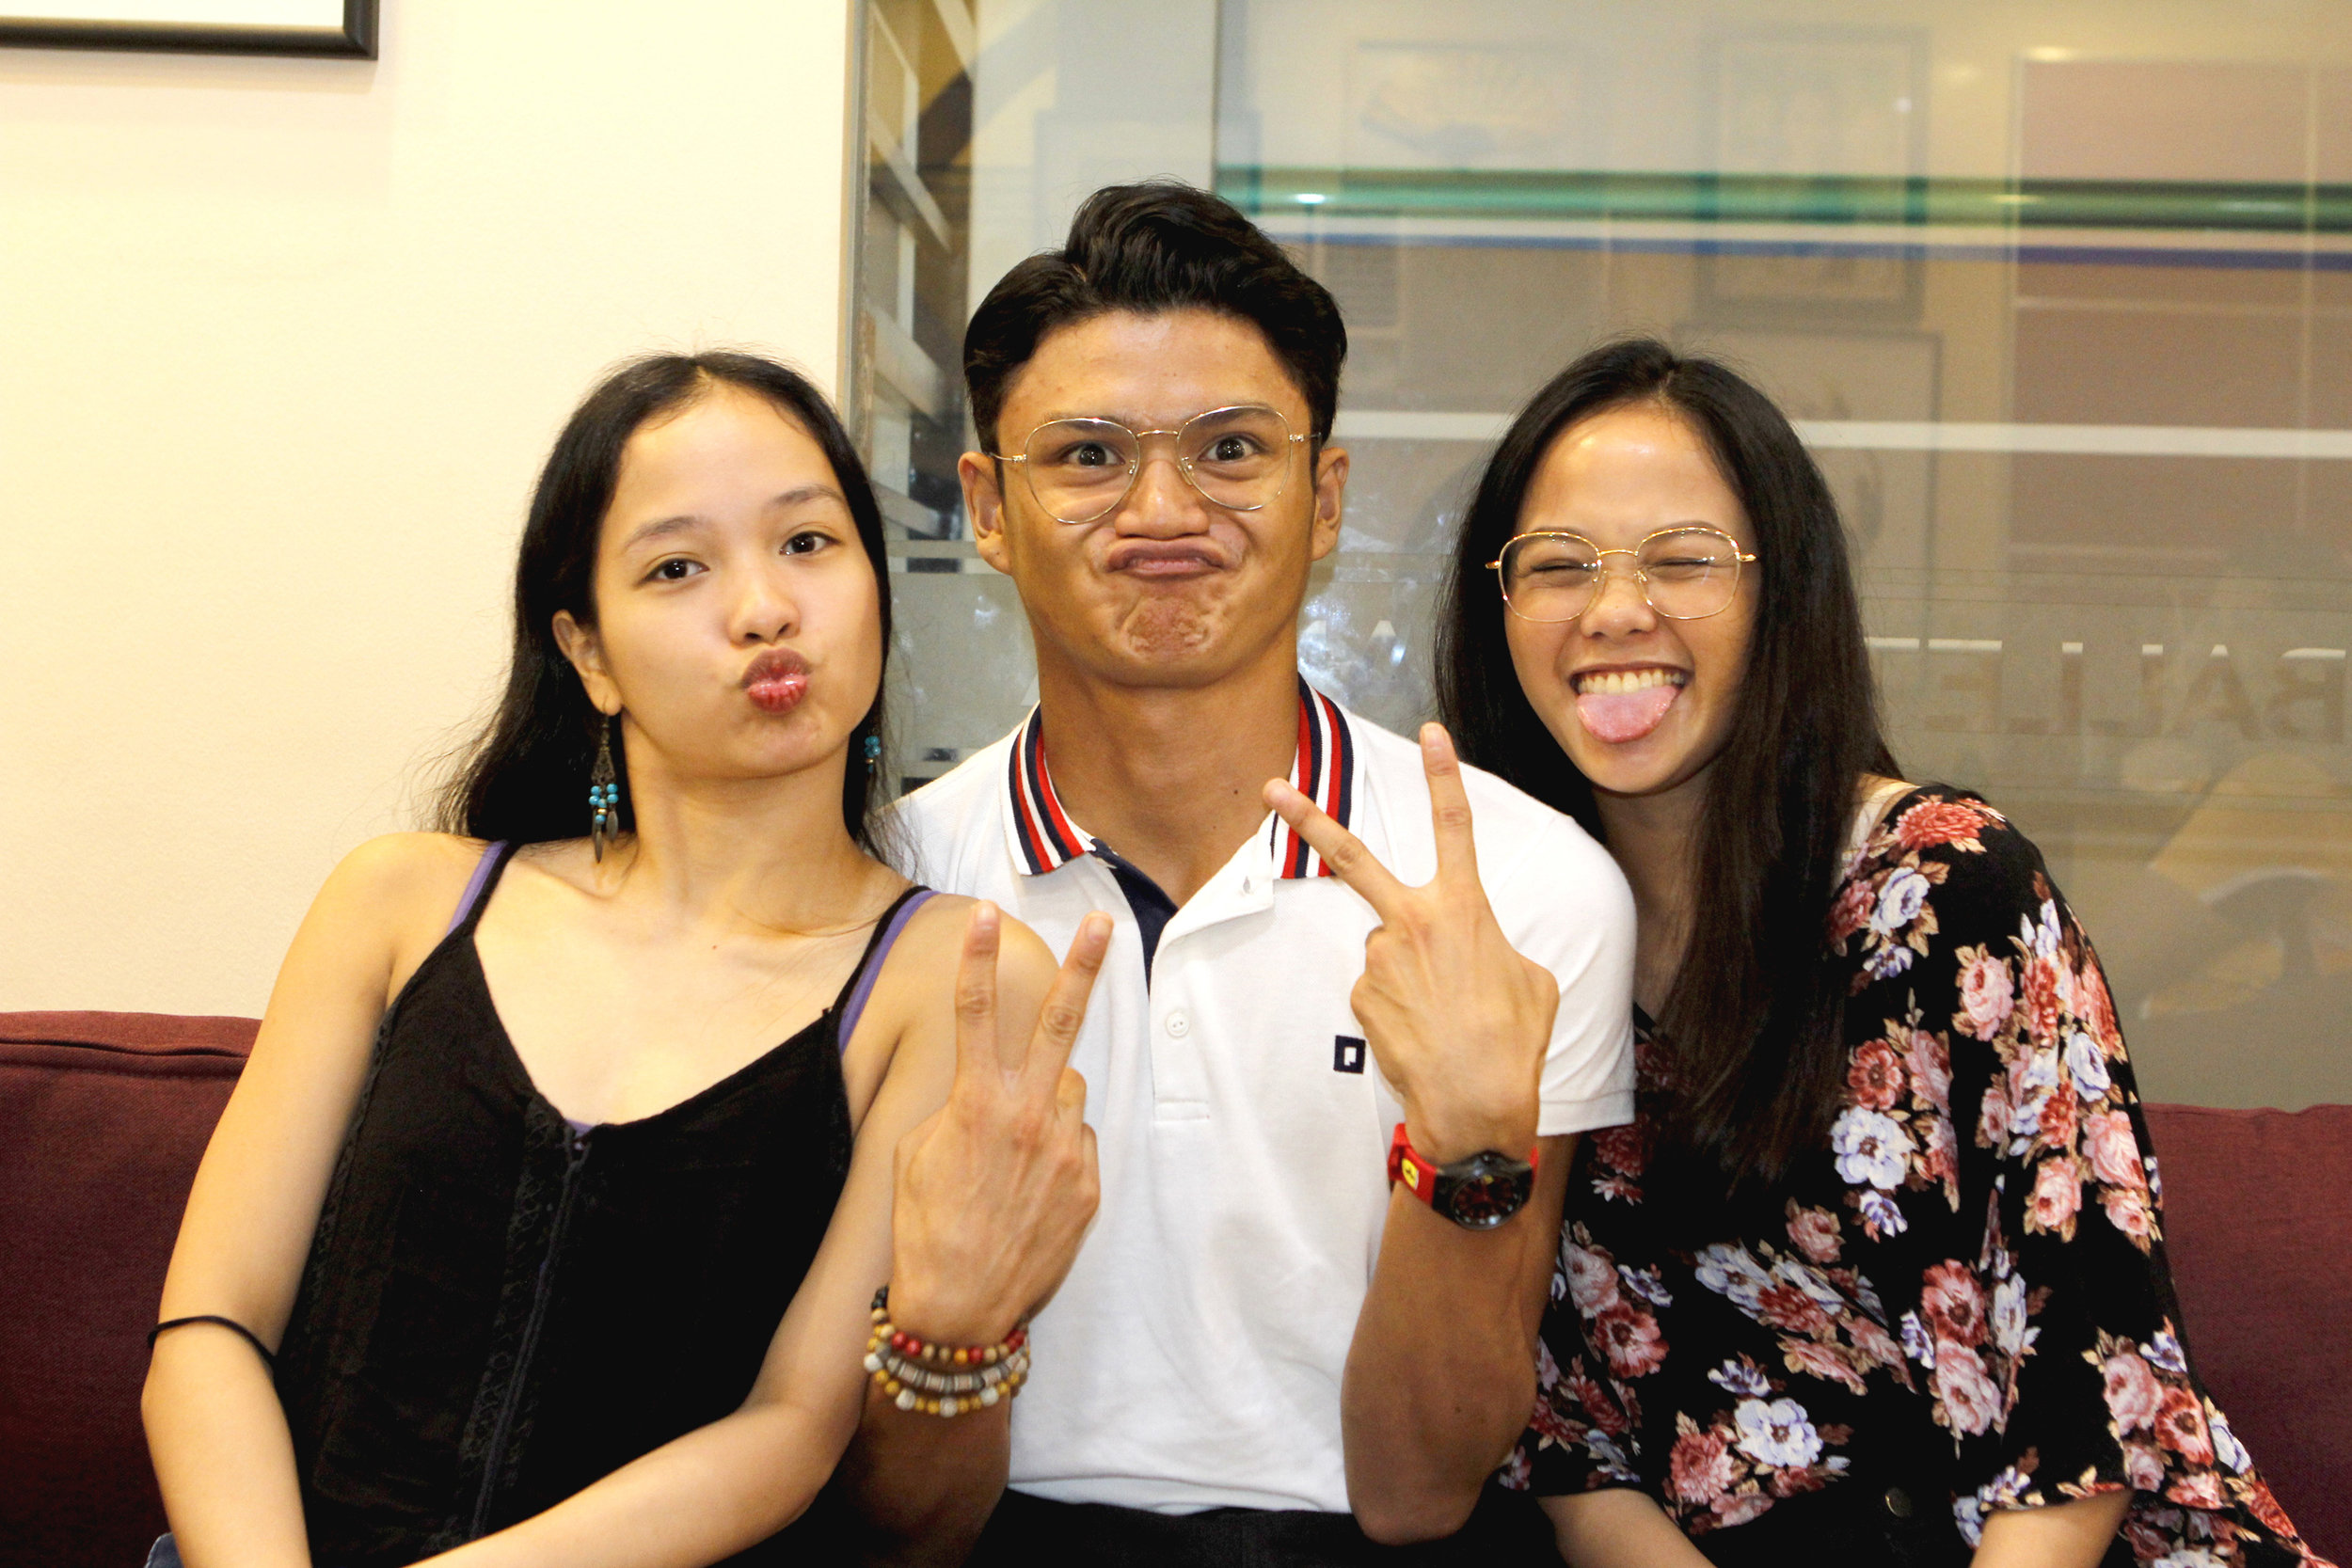 They're serious about ballet but Pearl, Joshua and Rissa May show they have a wacky side too. Photo by Jimmy Villanueva